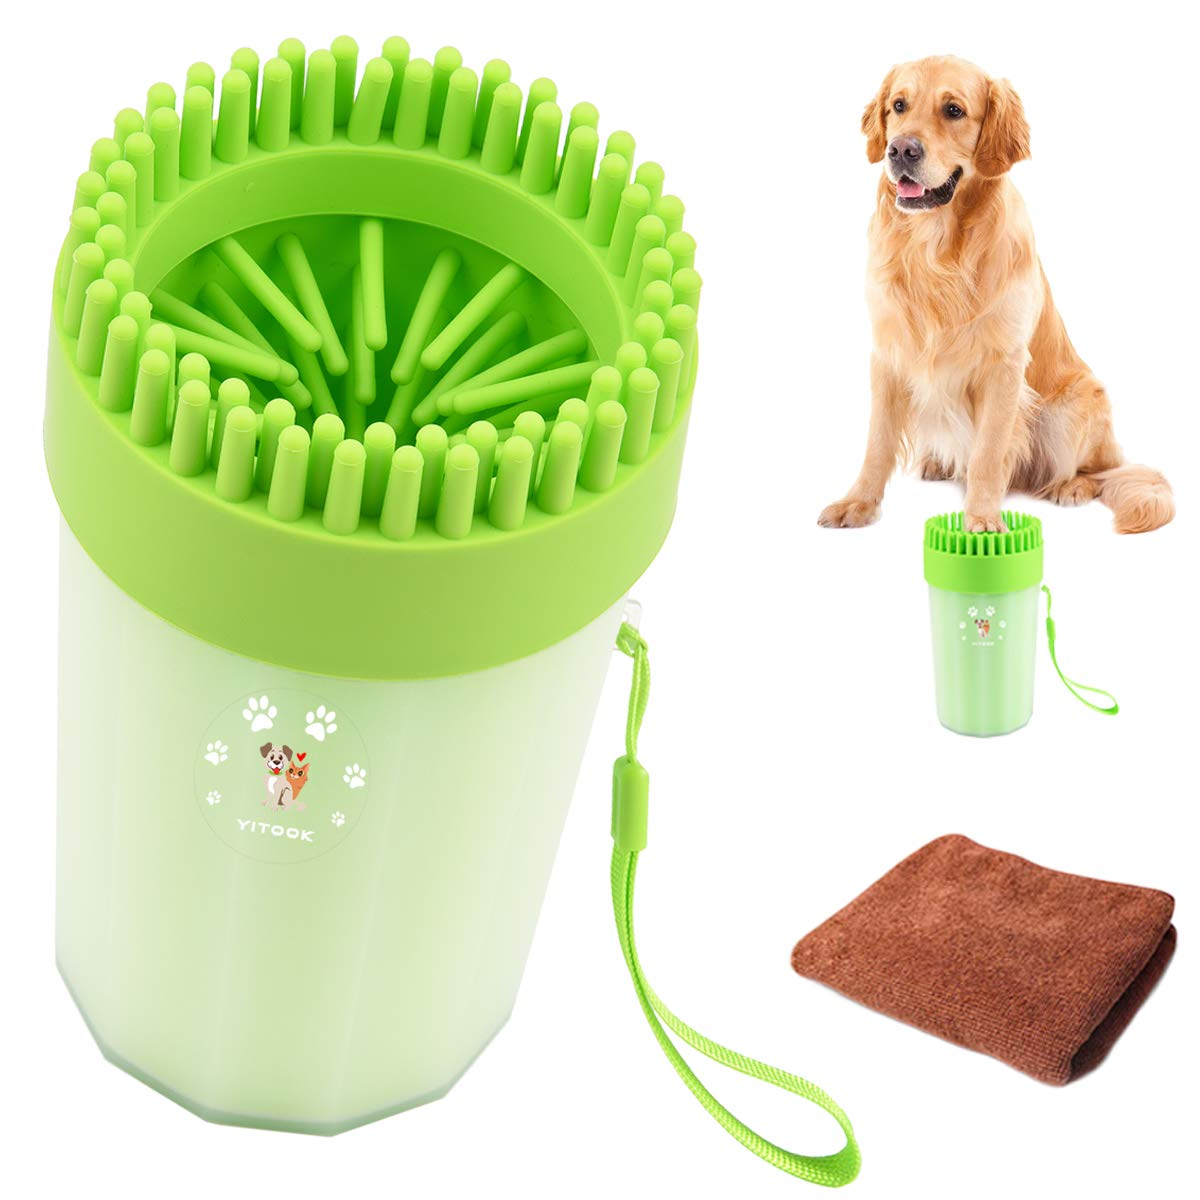 YITOOK Dog Paw Cleaner, Portable Dog Feet Washer with Towel,Upgrade 2 in1 Pet Paw Cleaner Plus Grooming Dog Plunger Feet Washer Cup for Muddy Paws (Green)